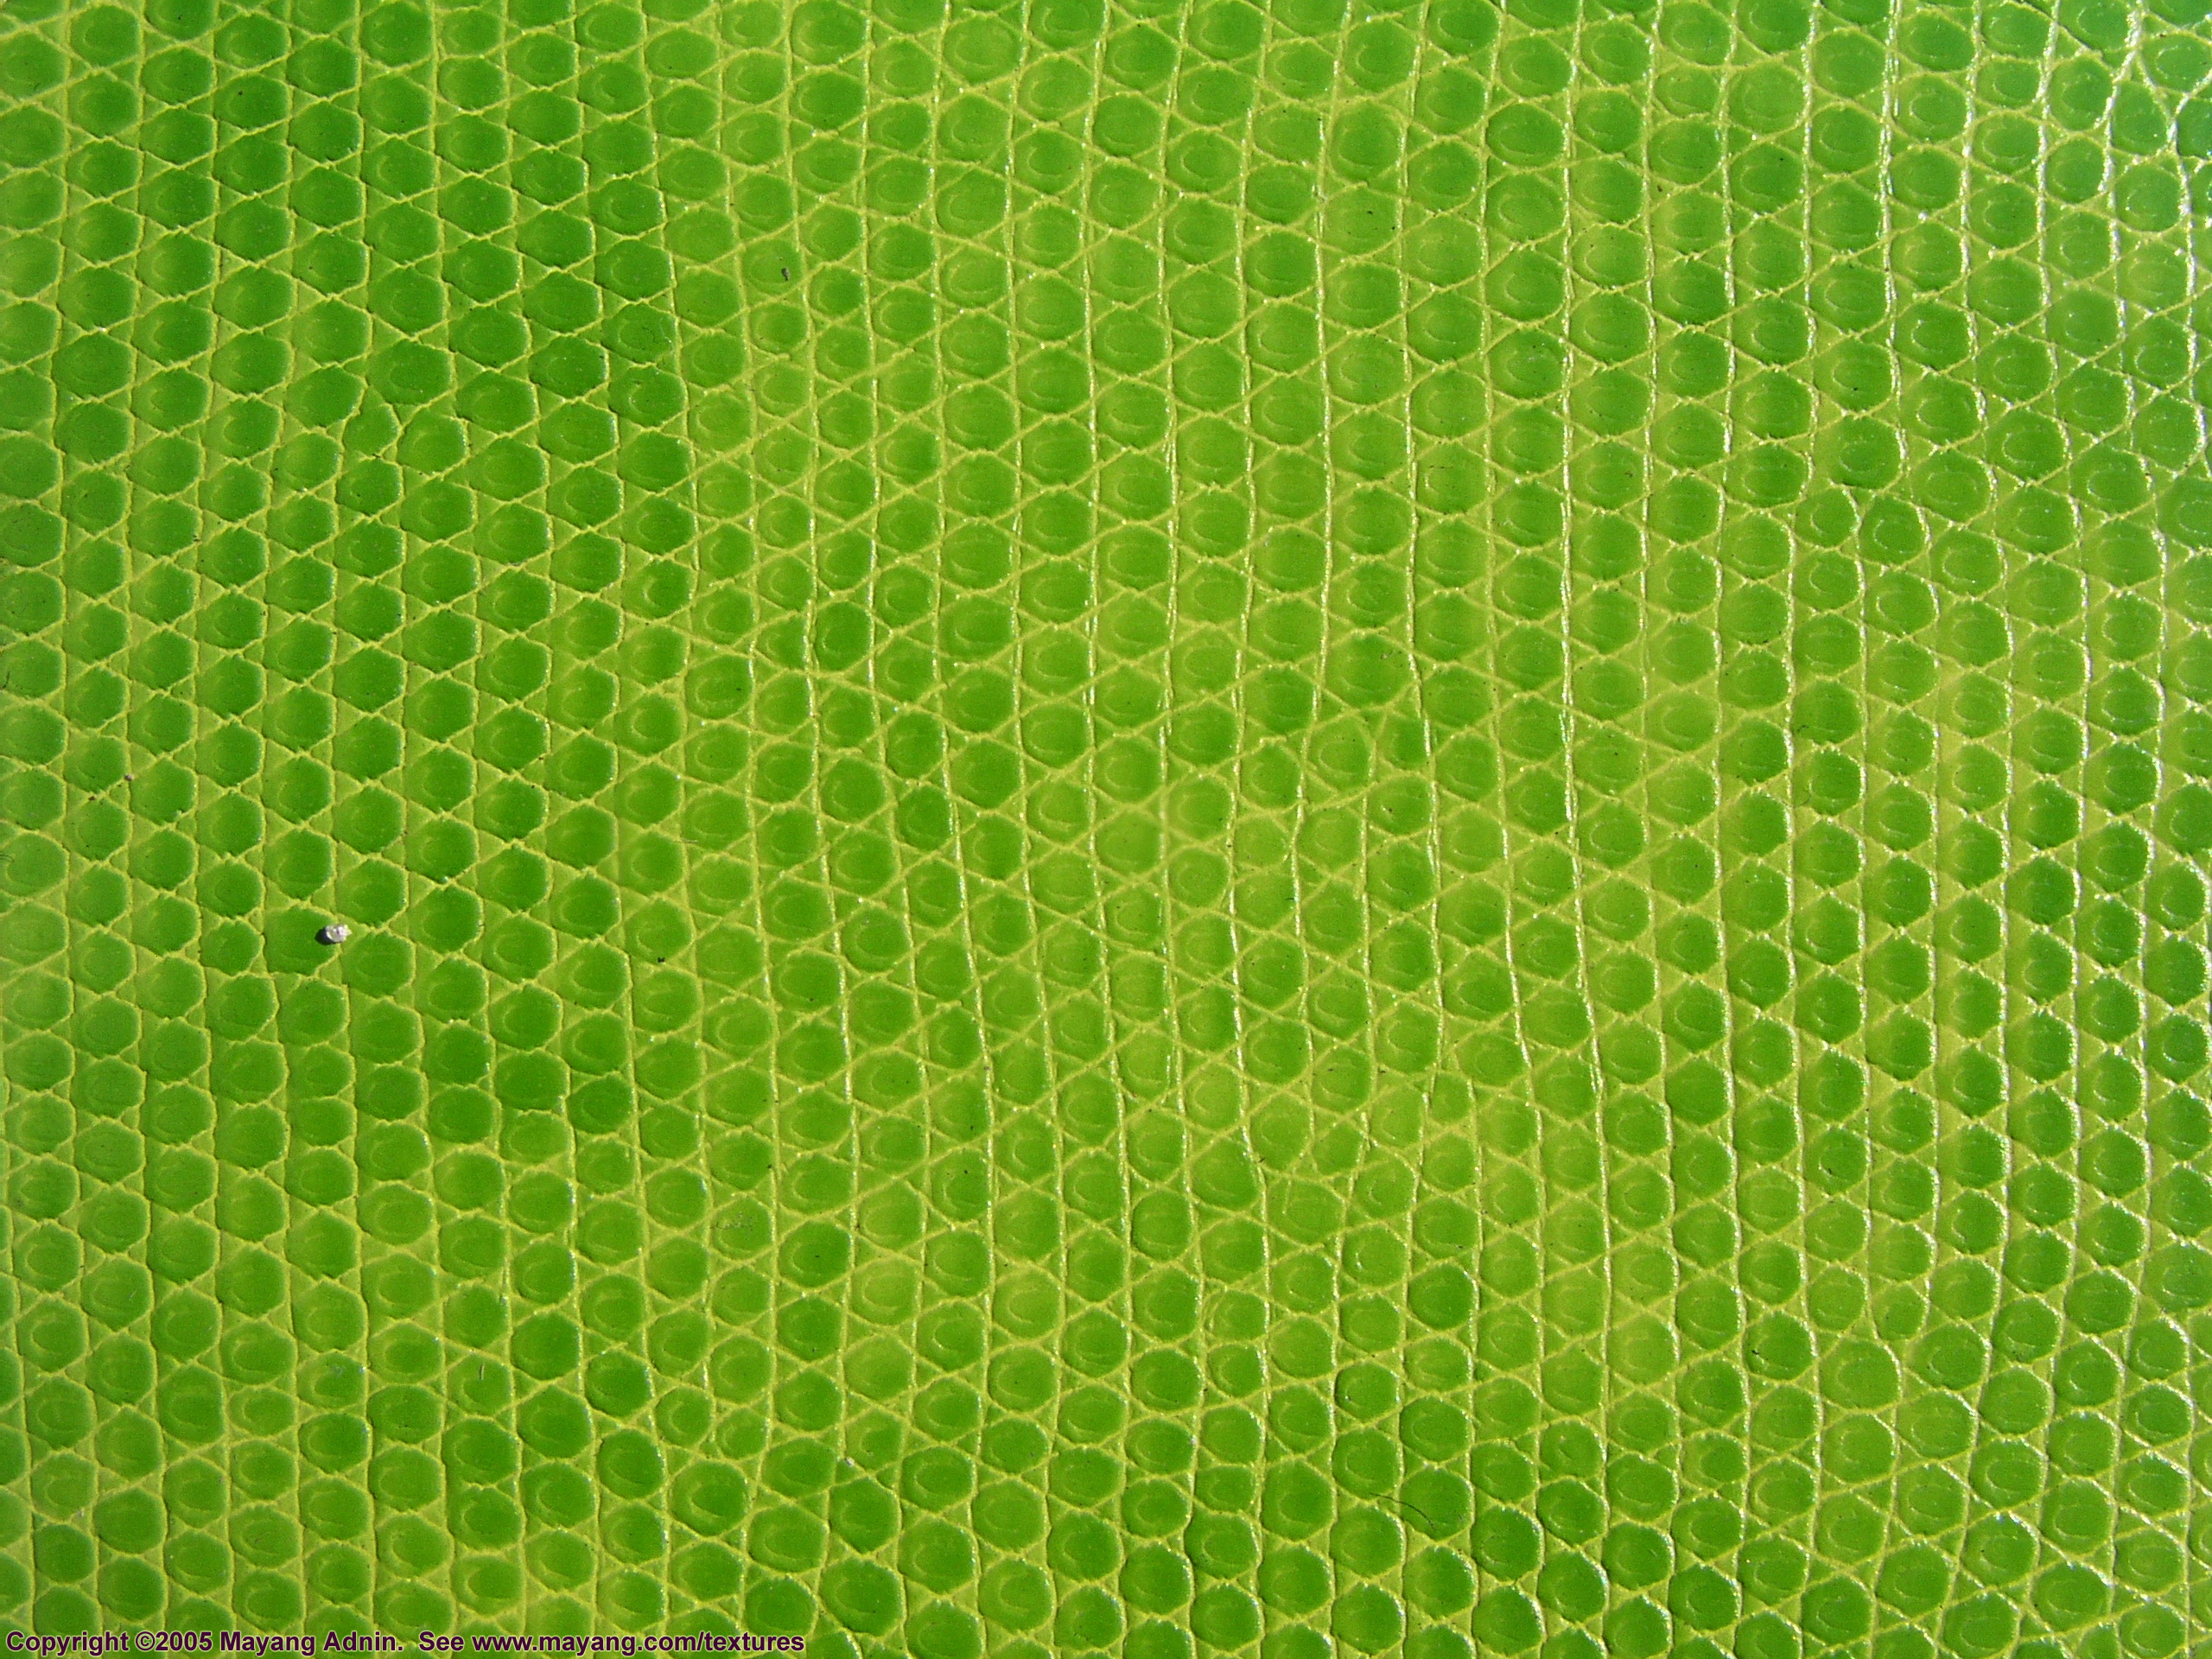 Leather Textures clipart lizard 20150525094344 (2560 texture skin 5562eed003d38